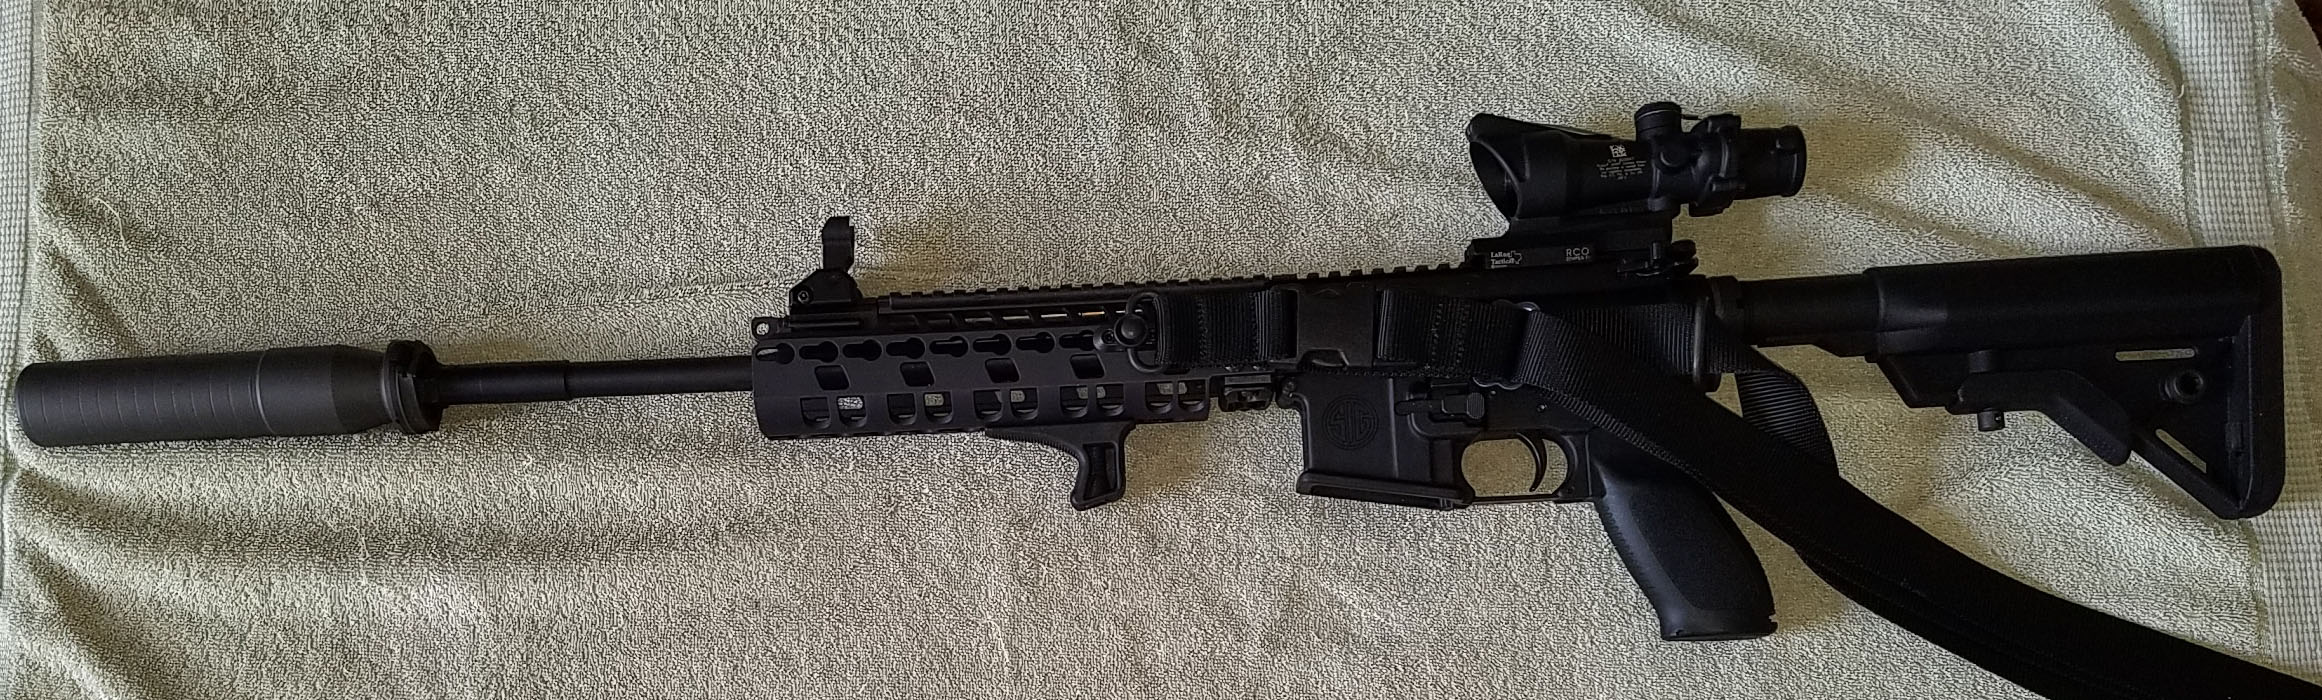 Post Pictures Of Firearms Page 4